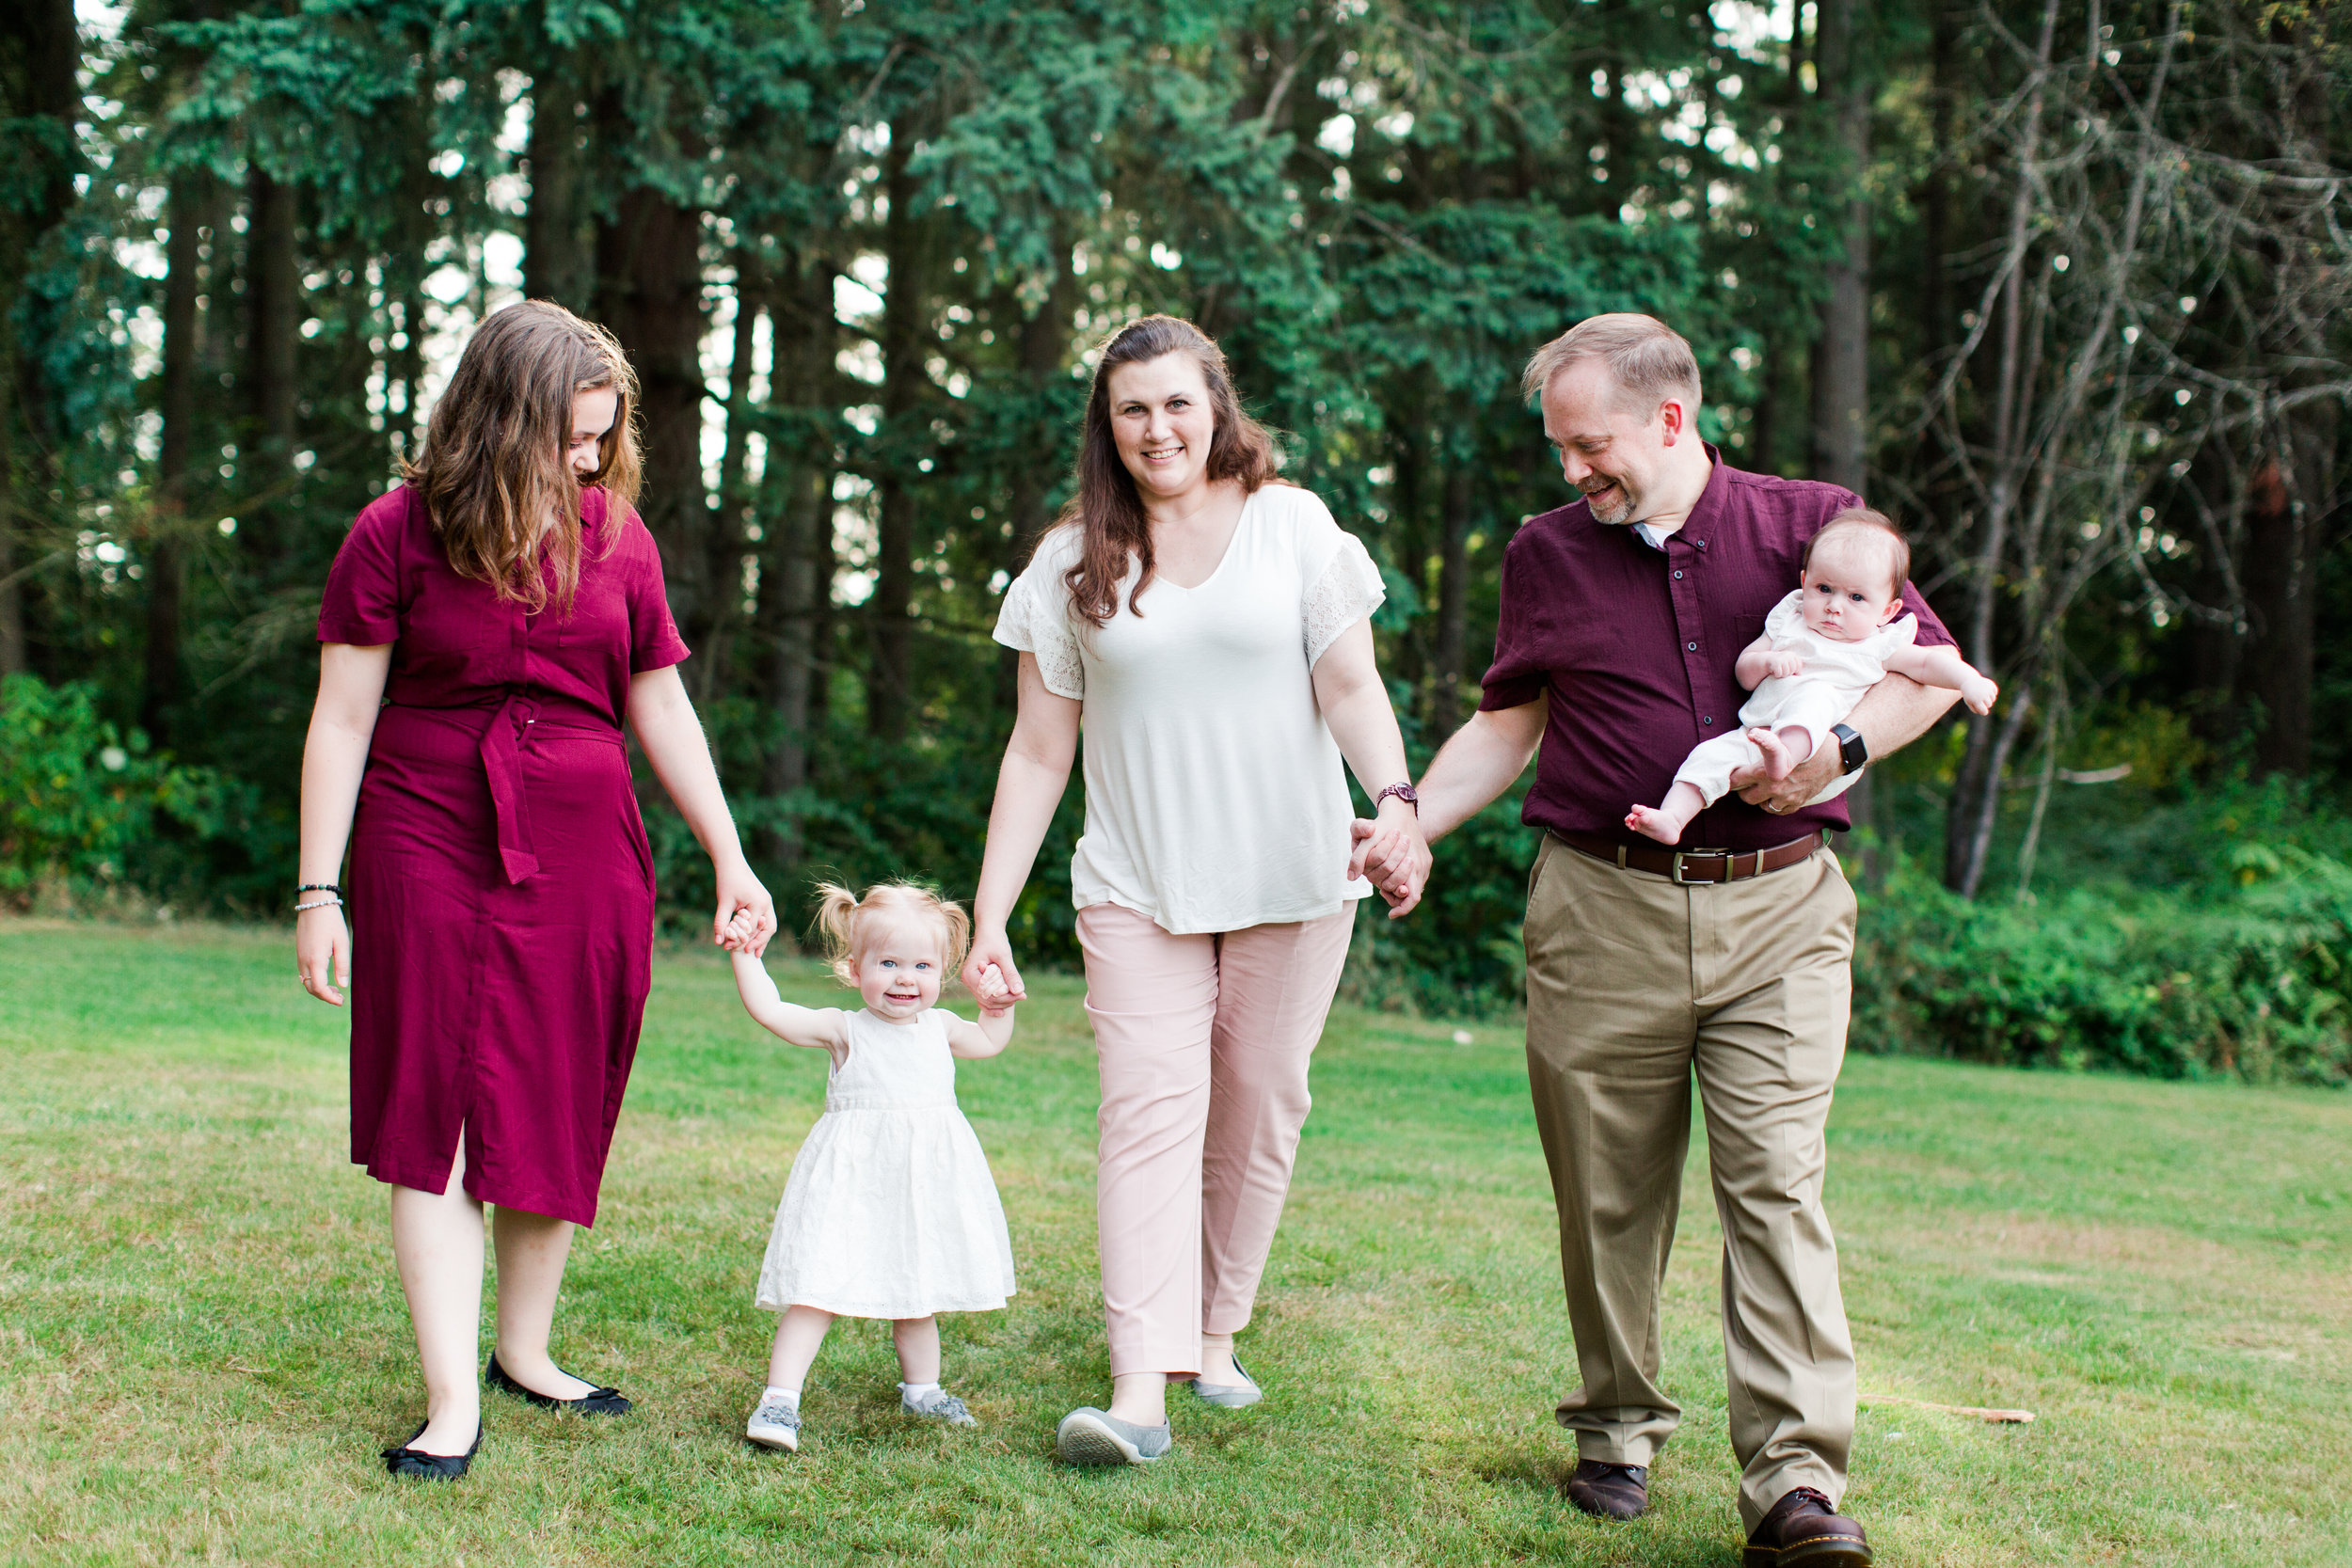 Family portraits at Bradley Lake Park in Puyallup